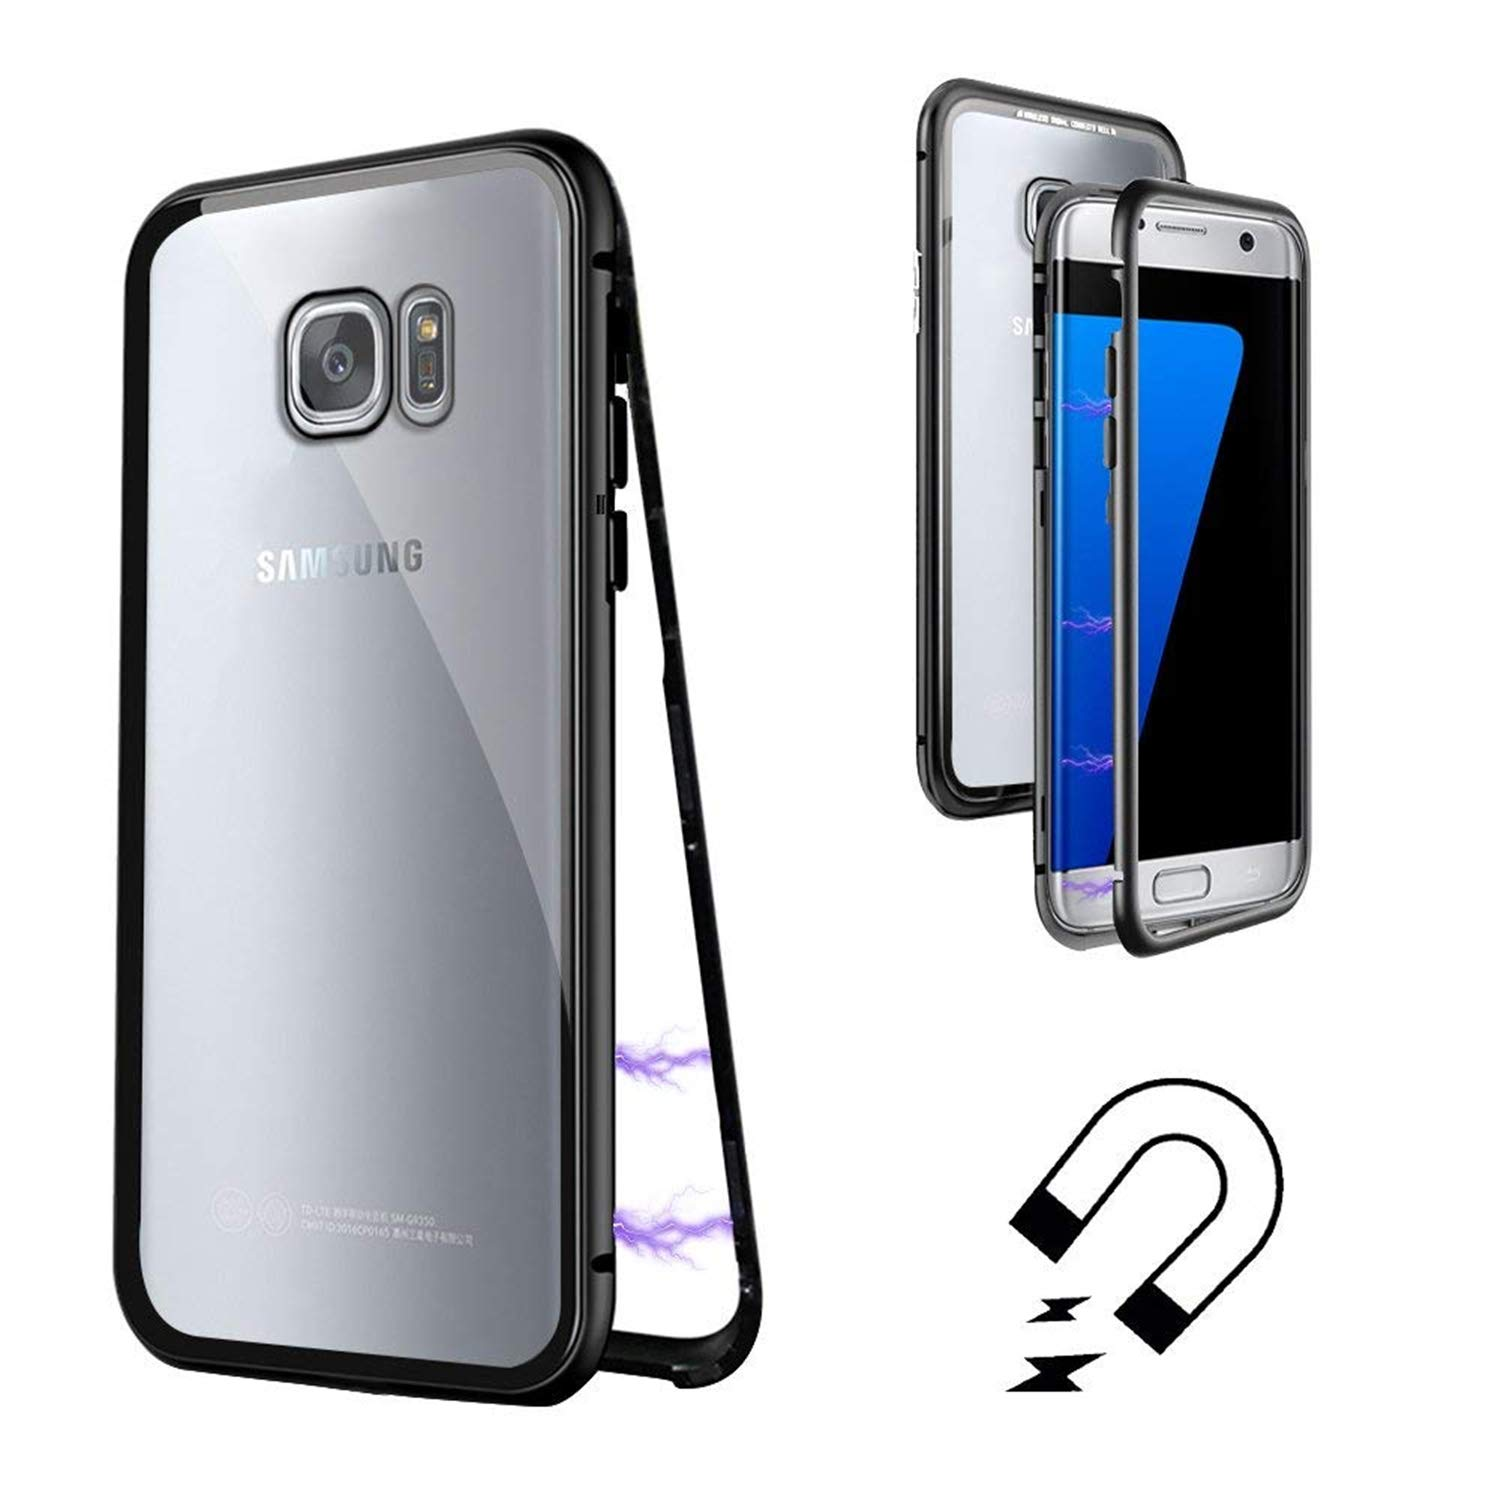 Galaxy S7 Edge Case, Magnetic Adsorption Flip Cover Case, Metal Frame Hard Clear Tempered Glass (Samsung Galaxy S7 Edge, Black)